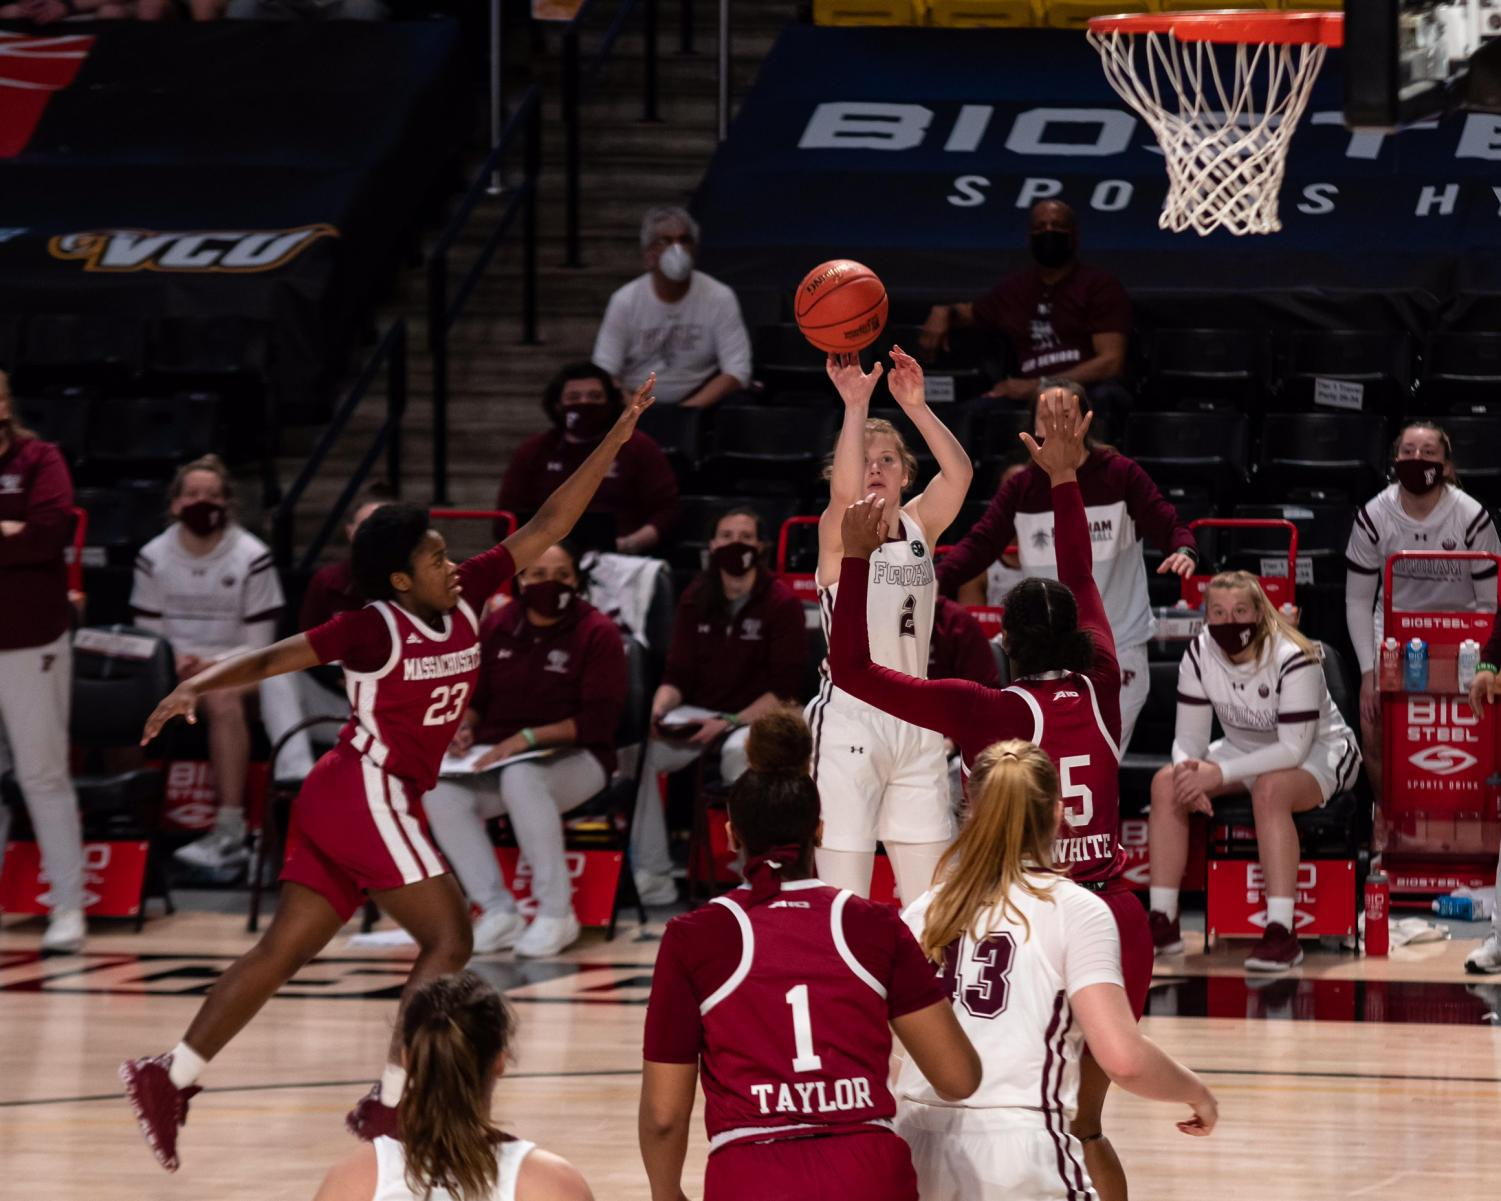 anna dewolfe jumps to shoot a basketball in the a10 tournament game